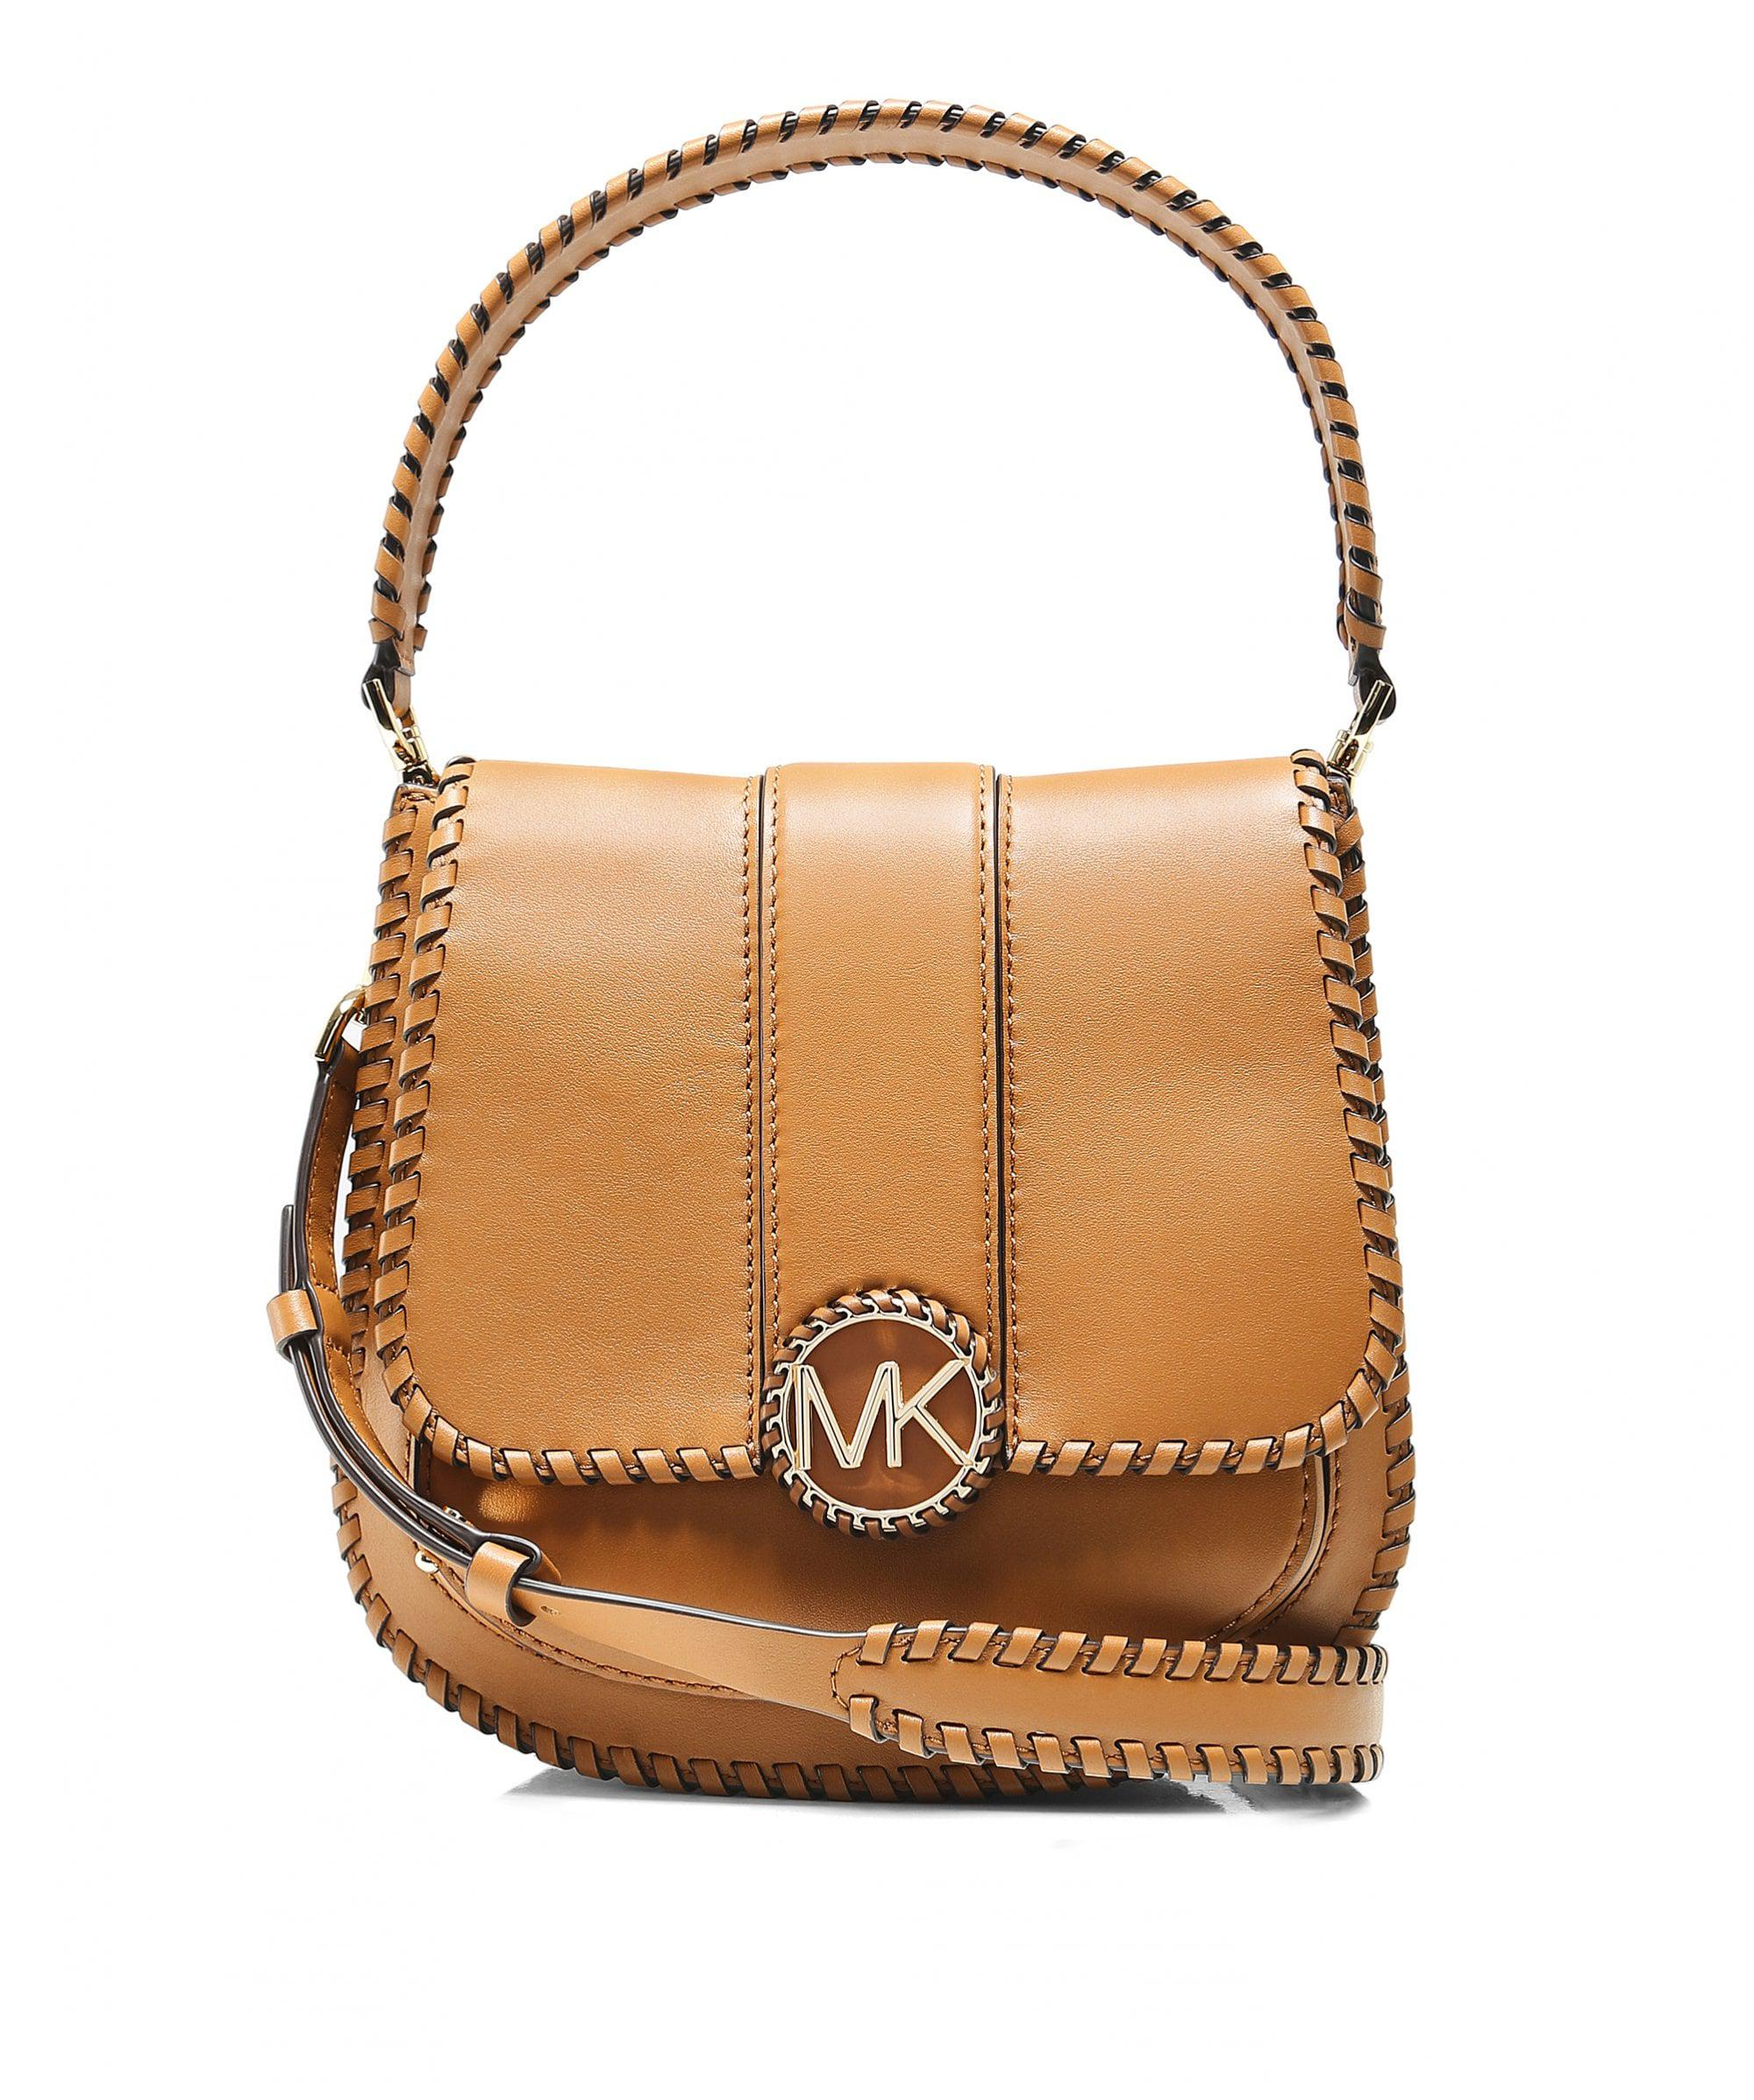 3a80878d7ec2 MICHAEL Michael Kors Lillie Medium Leather Shoulder Bag in Brown - Lyst